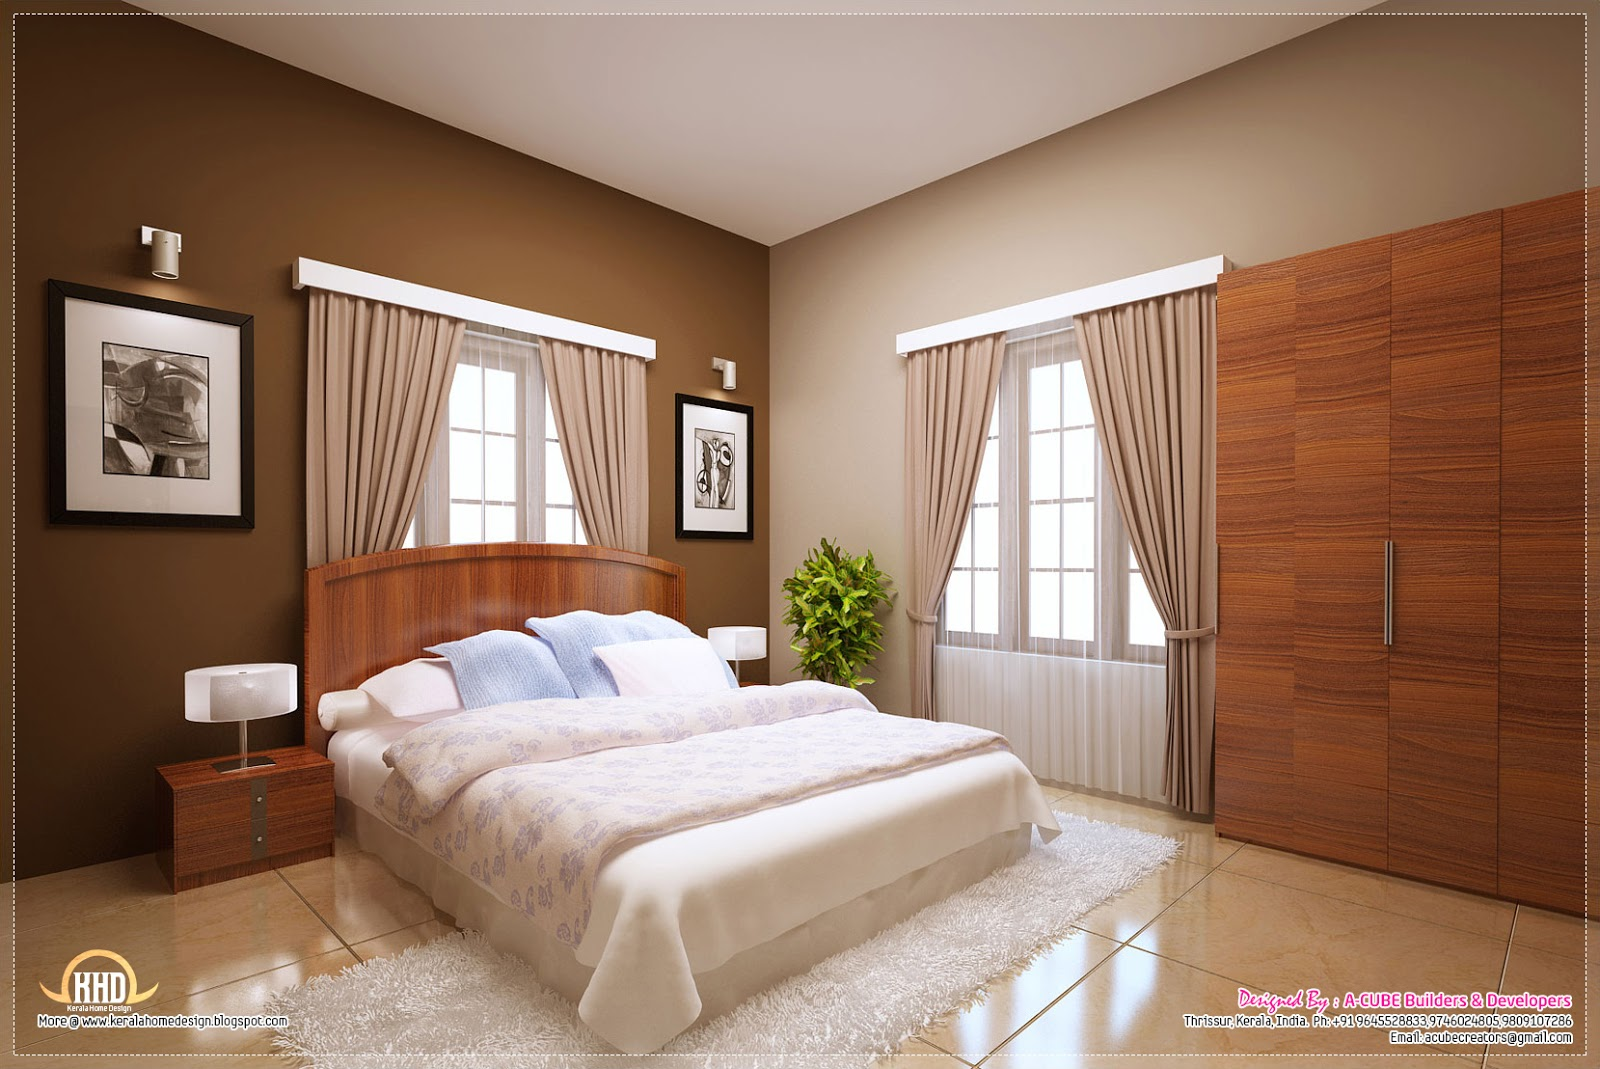 Awesome interior decoration ideas house design plans - Interior bedroom decoration ...